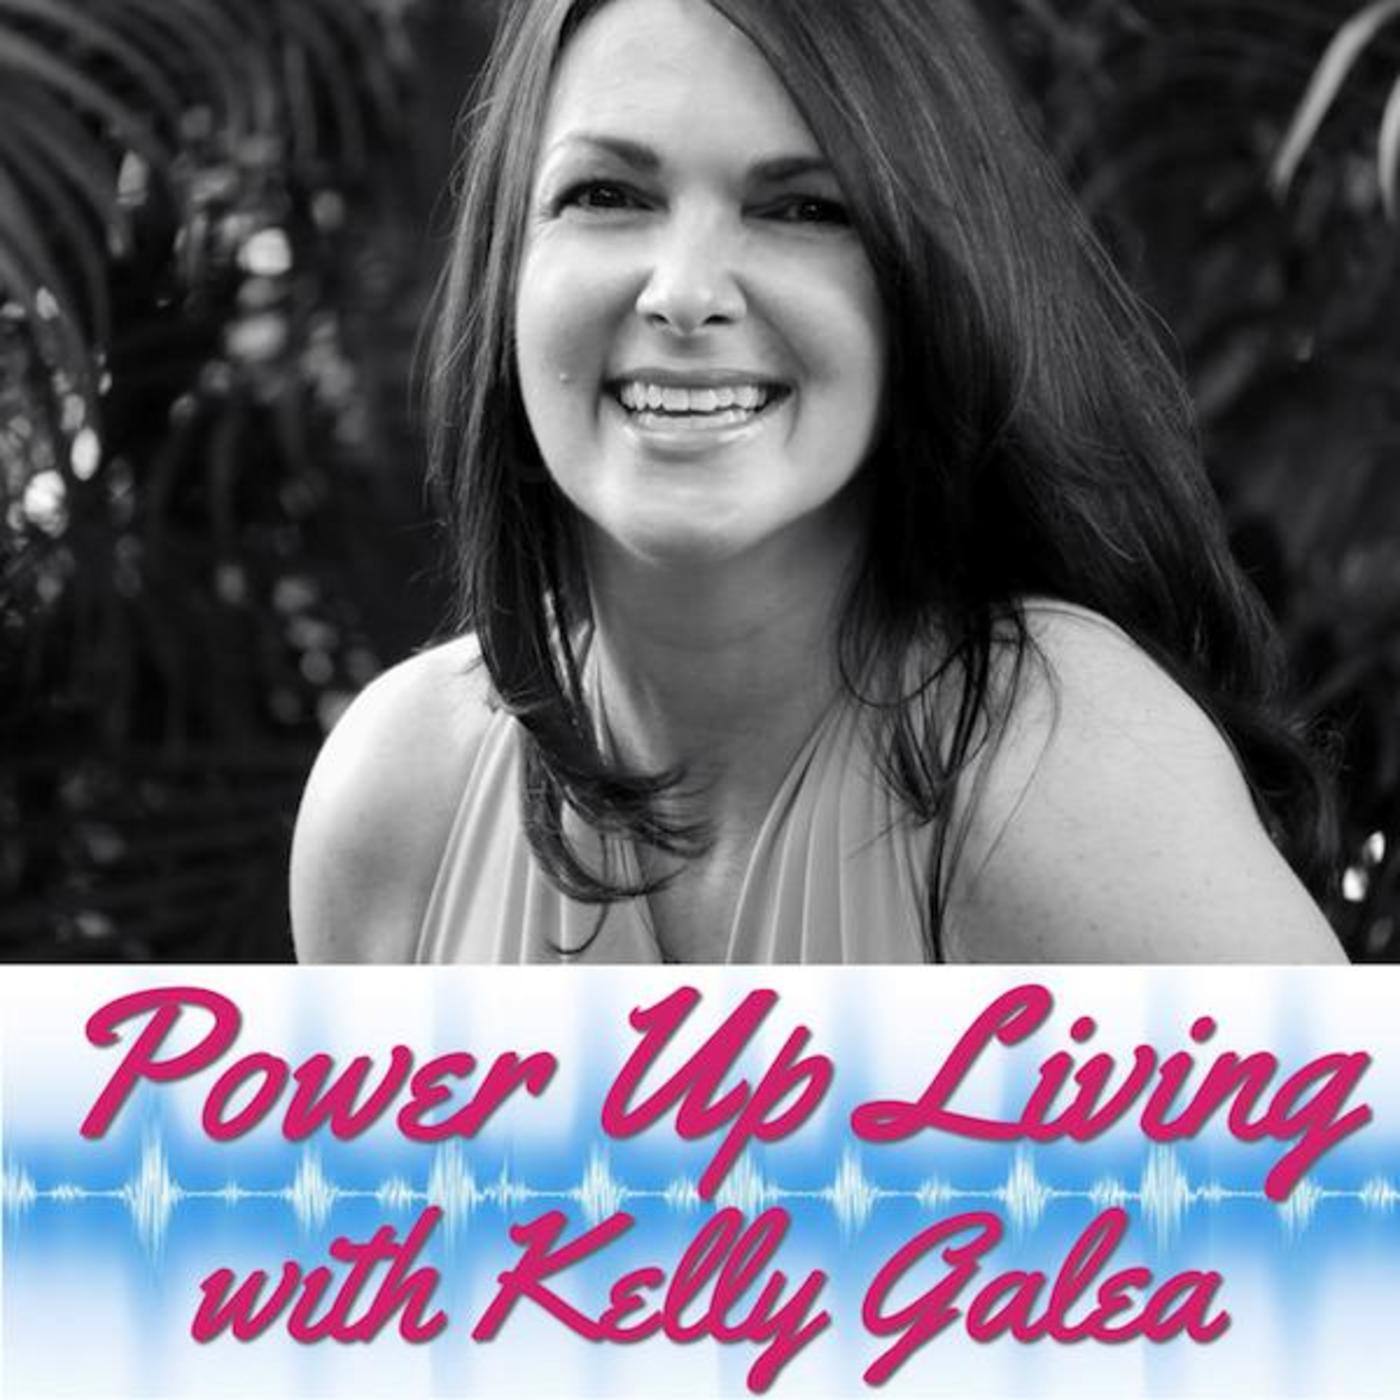 Power Up Living with Kelly Galea